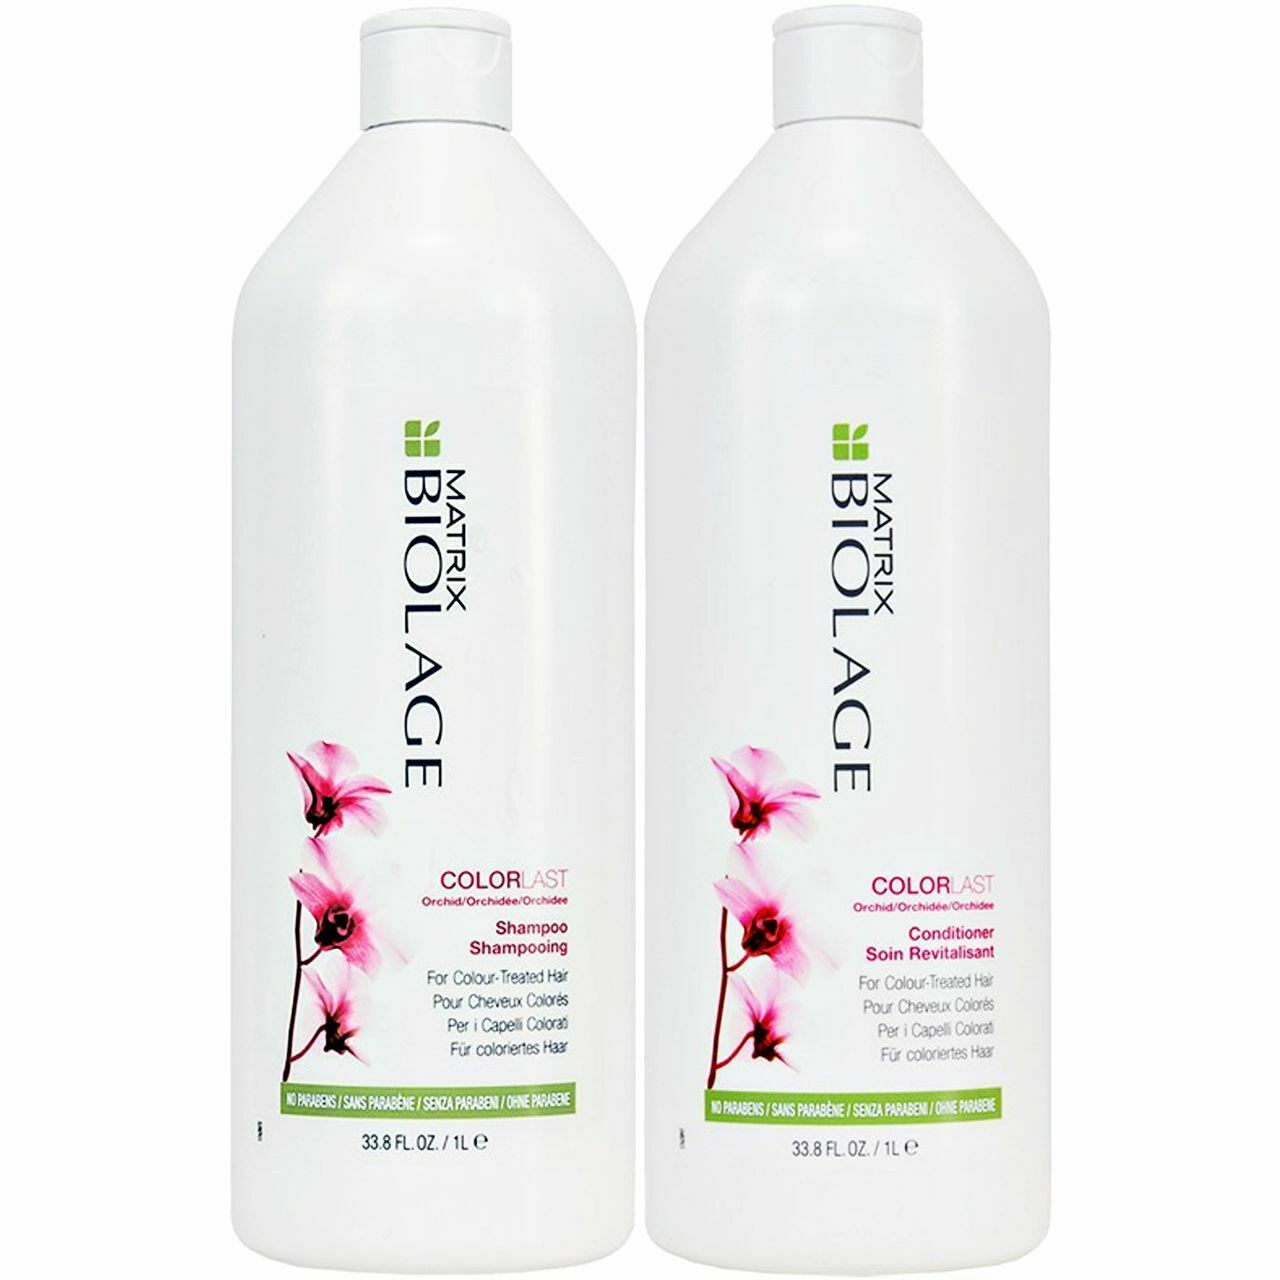 Matrix Biolage Color Last Shampoo and Conditioner Liter Duo / 33.8oz each NEW!  - $35.35